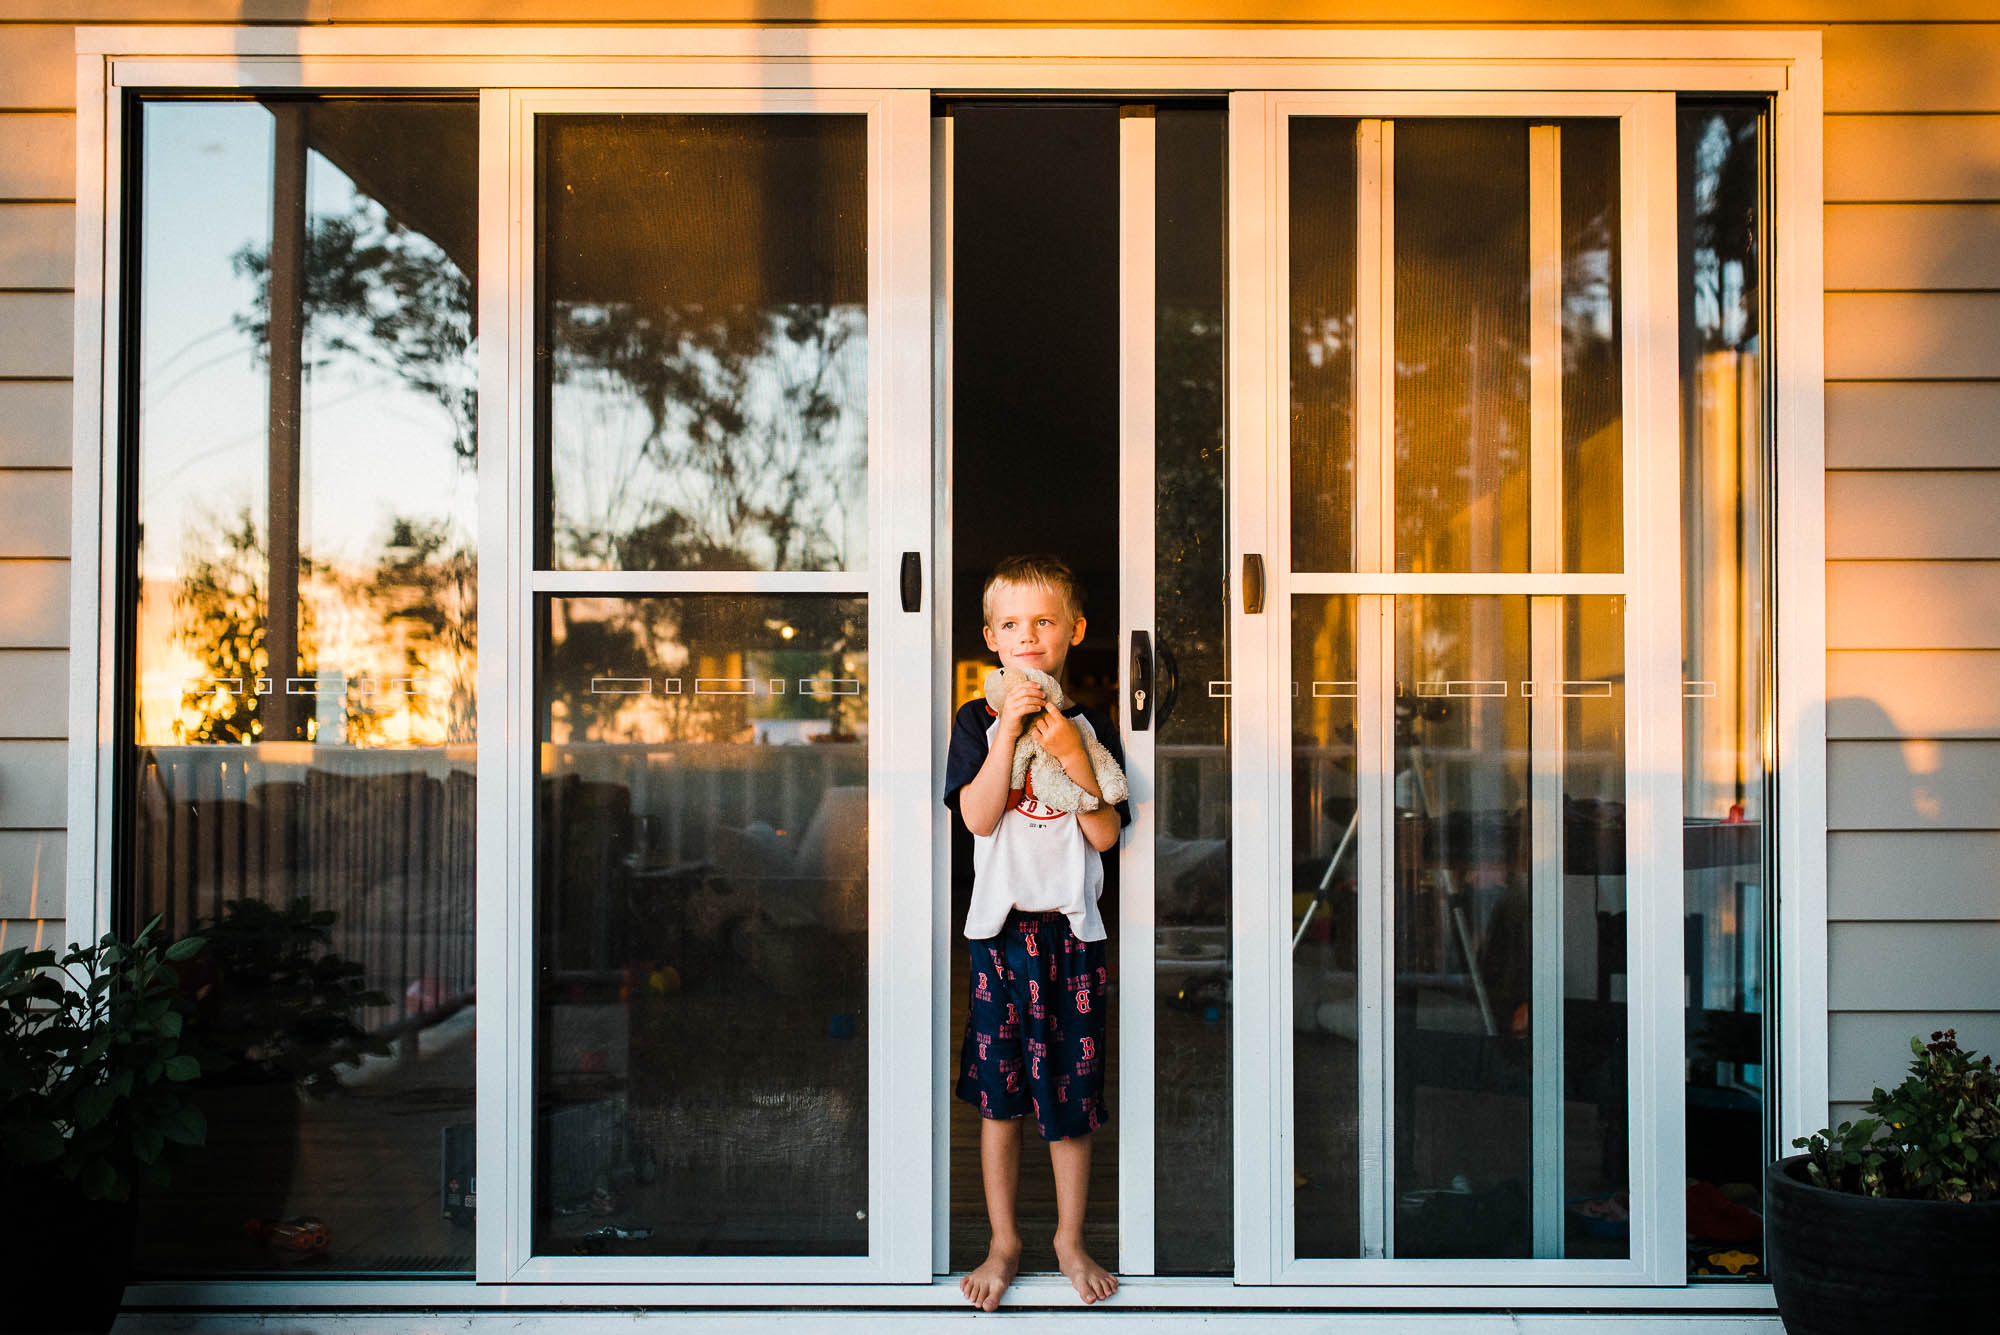 melbourne_family_photographer_boy_in_the_door_at_sunrise-1.jpg